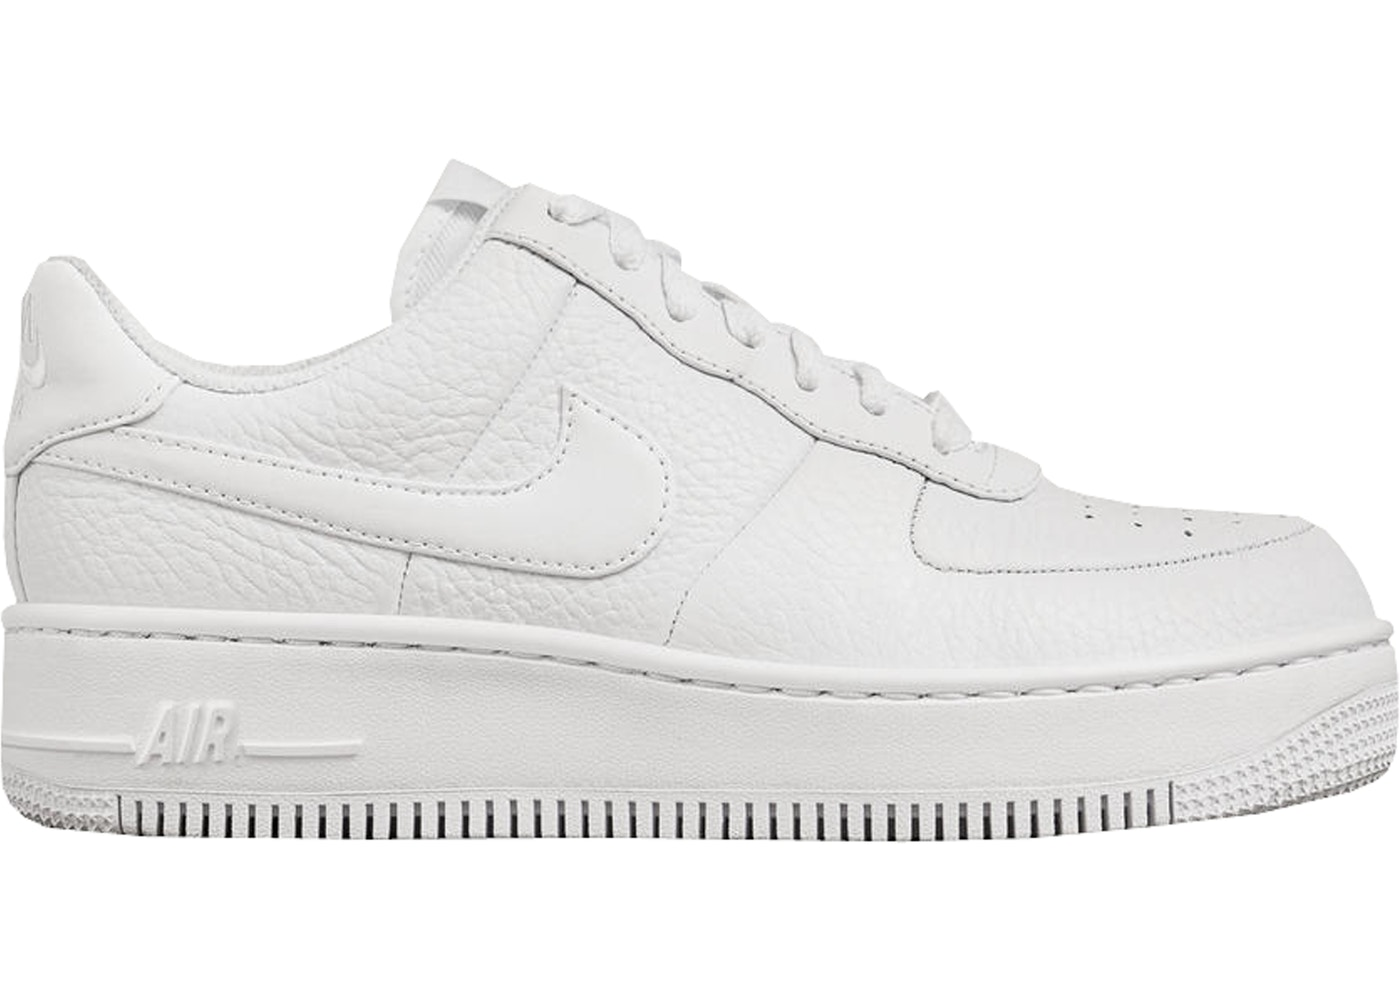 Air Force 1 Upstep Low Bread & Butter White (W) Sneakers